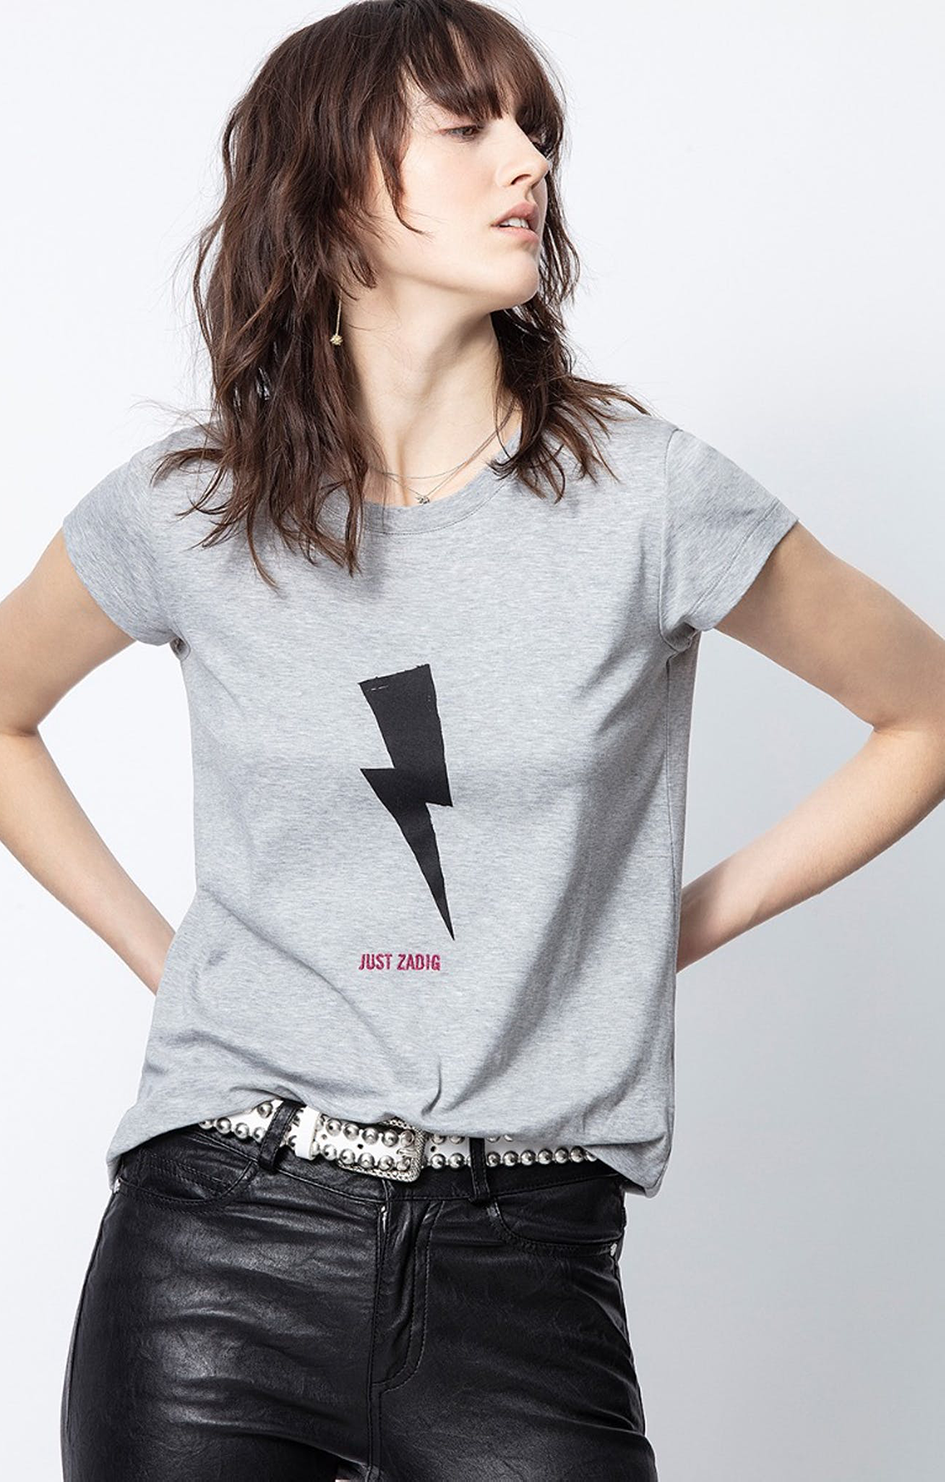 Zaidg & Voltaire Flashlight Just Zadig Skinny T-Shirt